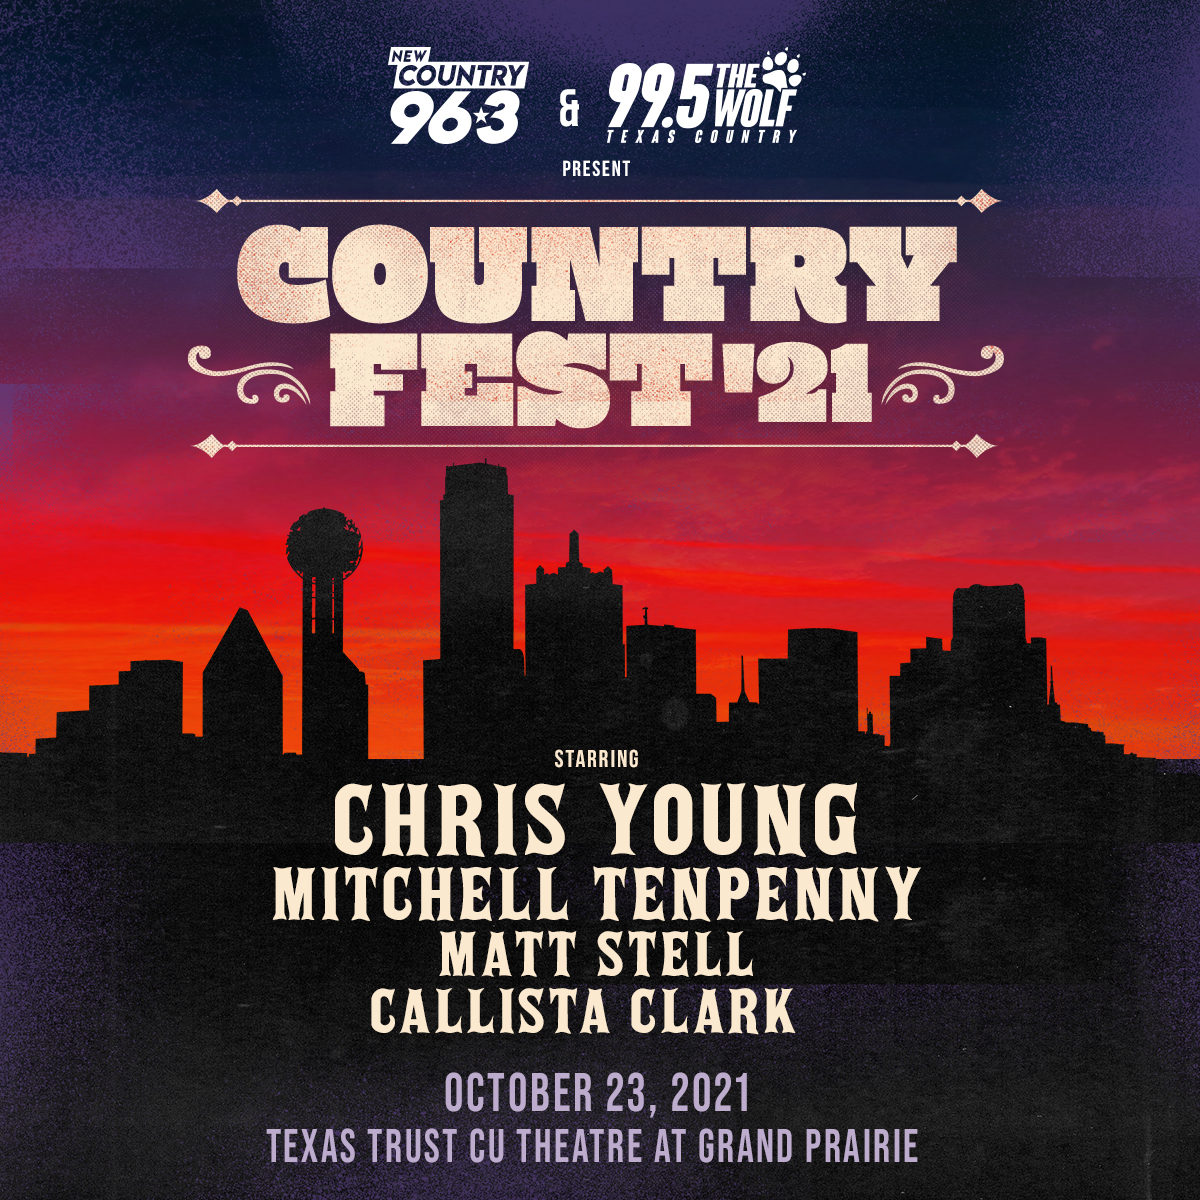 COUNTRYFEST '21 featuring Chris Young   10.23.21